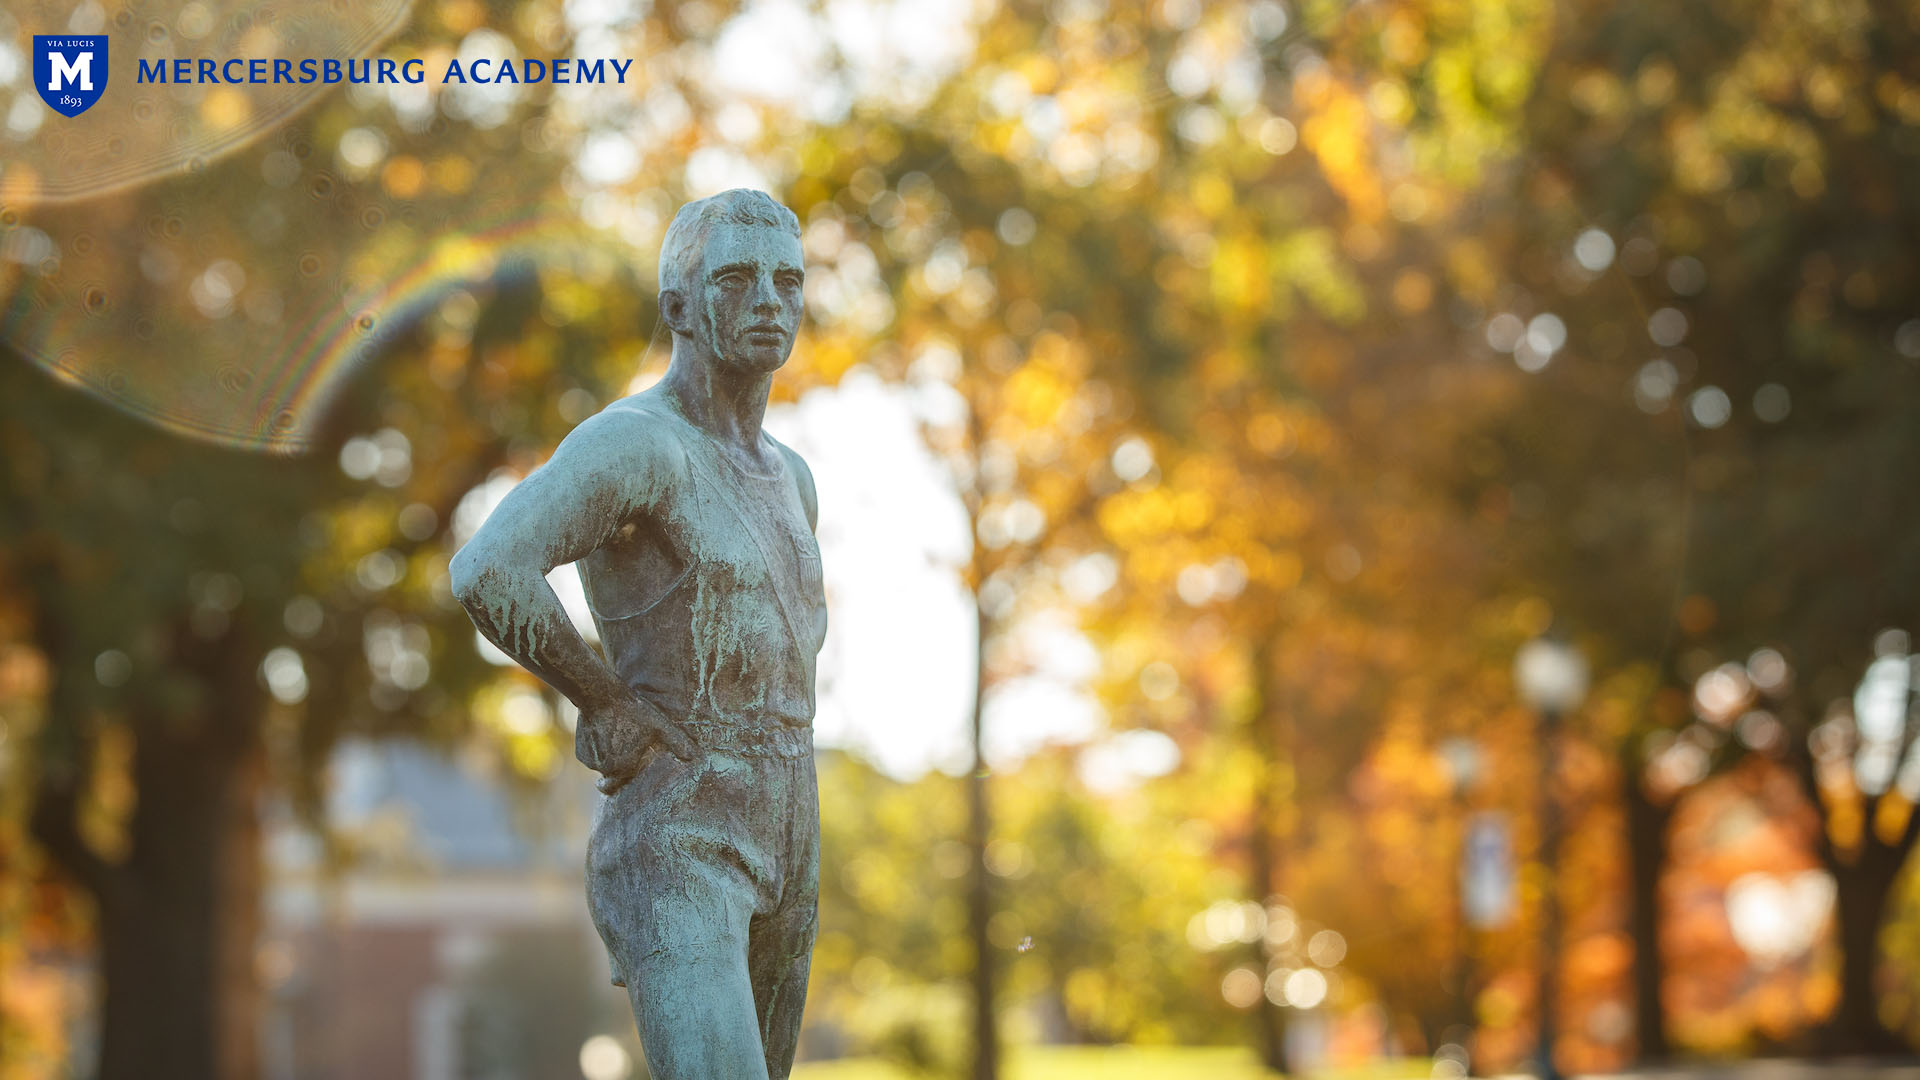 Statue in front of Traylor Hall at Mercersburg Academy campus